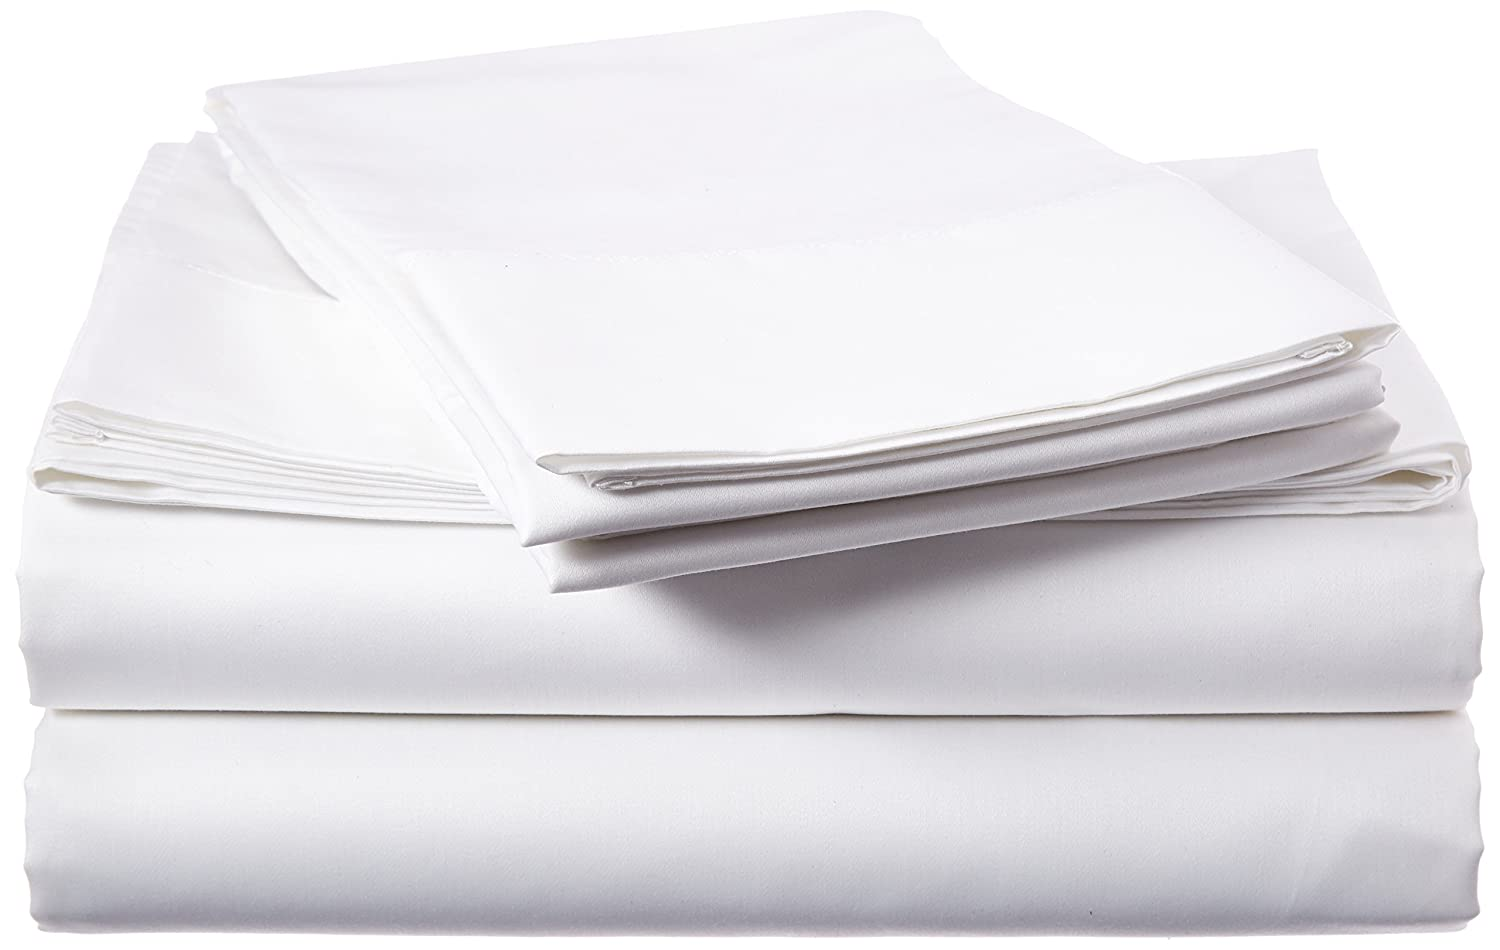 Tribeca Living 800 Thread Count Egyptian Cotton Sateen Deep Pocket Sheet Set, Queen